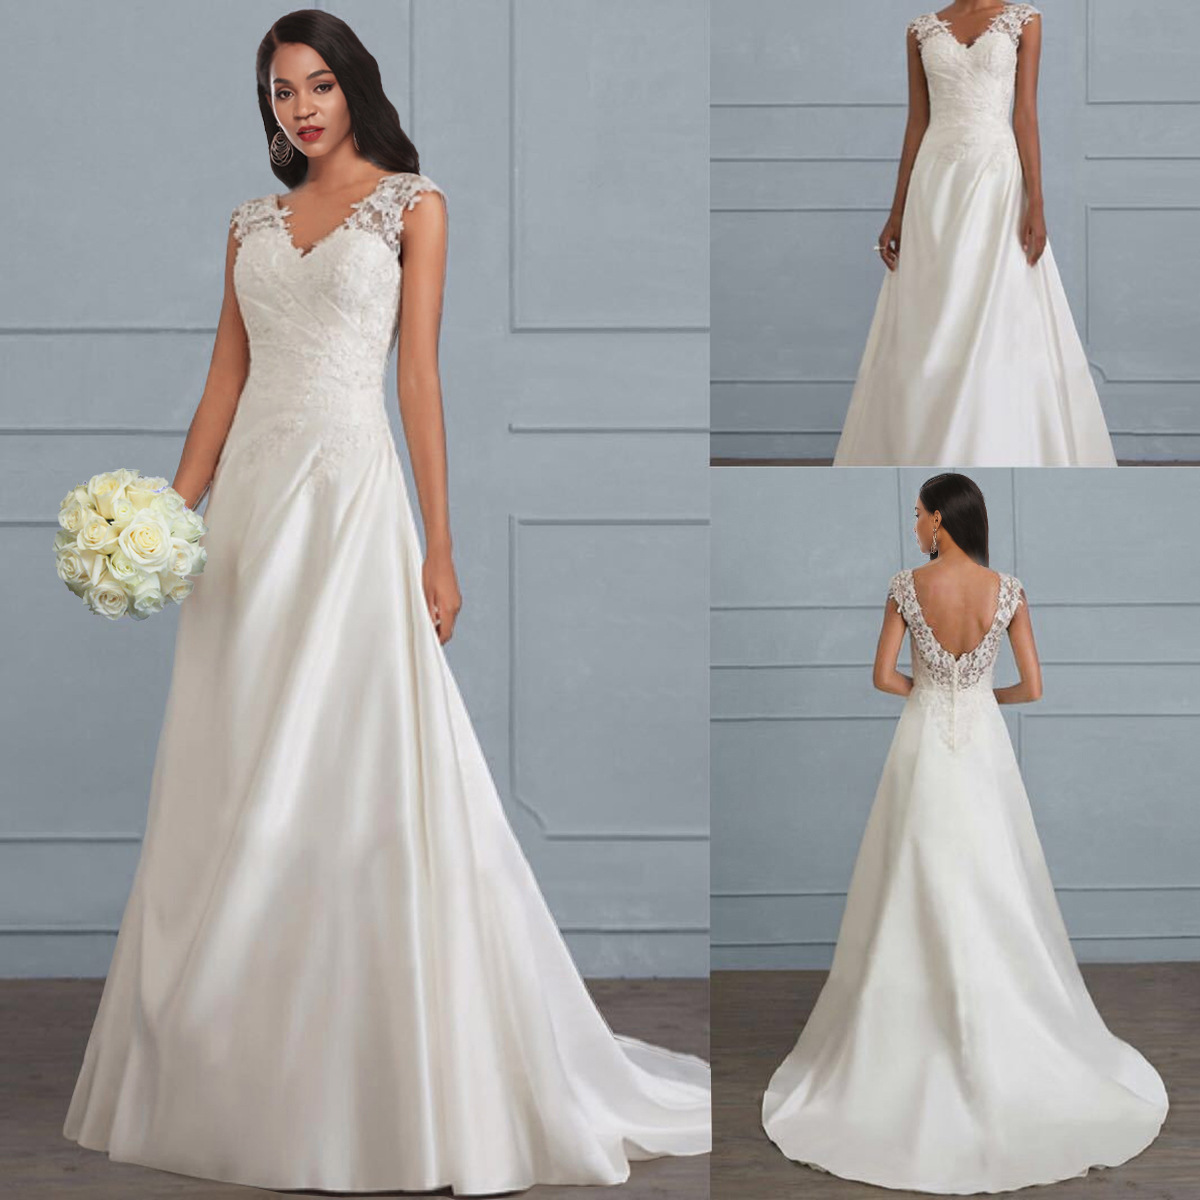 Nv Qun Zhuang Women's Solid Color Lace Joint Camisole Hollow Out Backless Dress Toast Wedding Dress Long Skirts